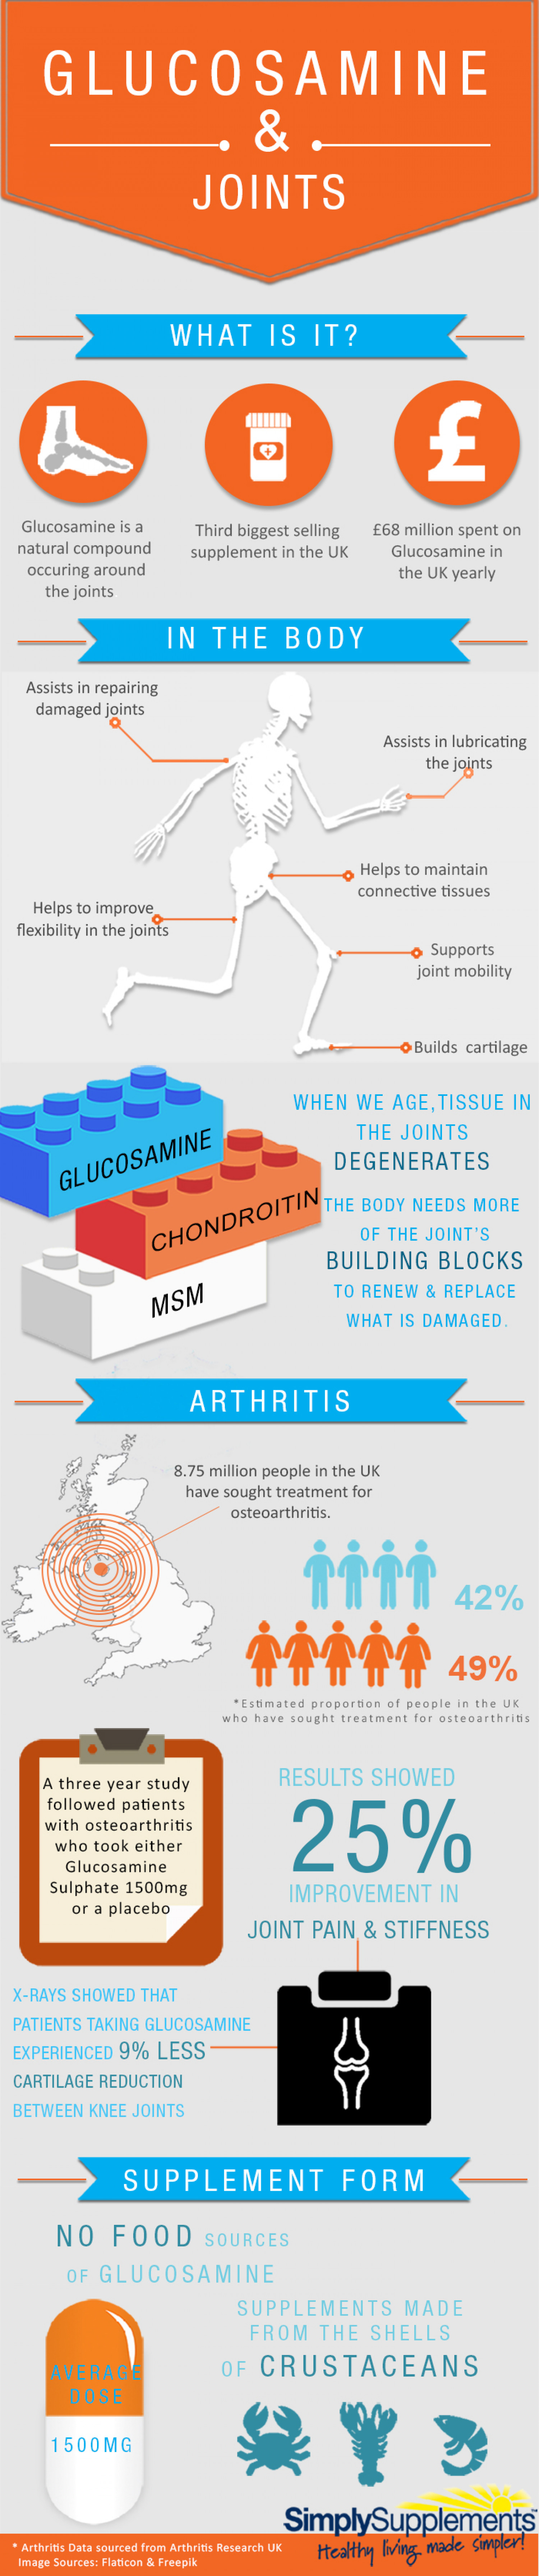 Glucosamine and Joints  Infographic